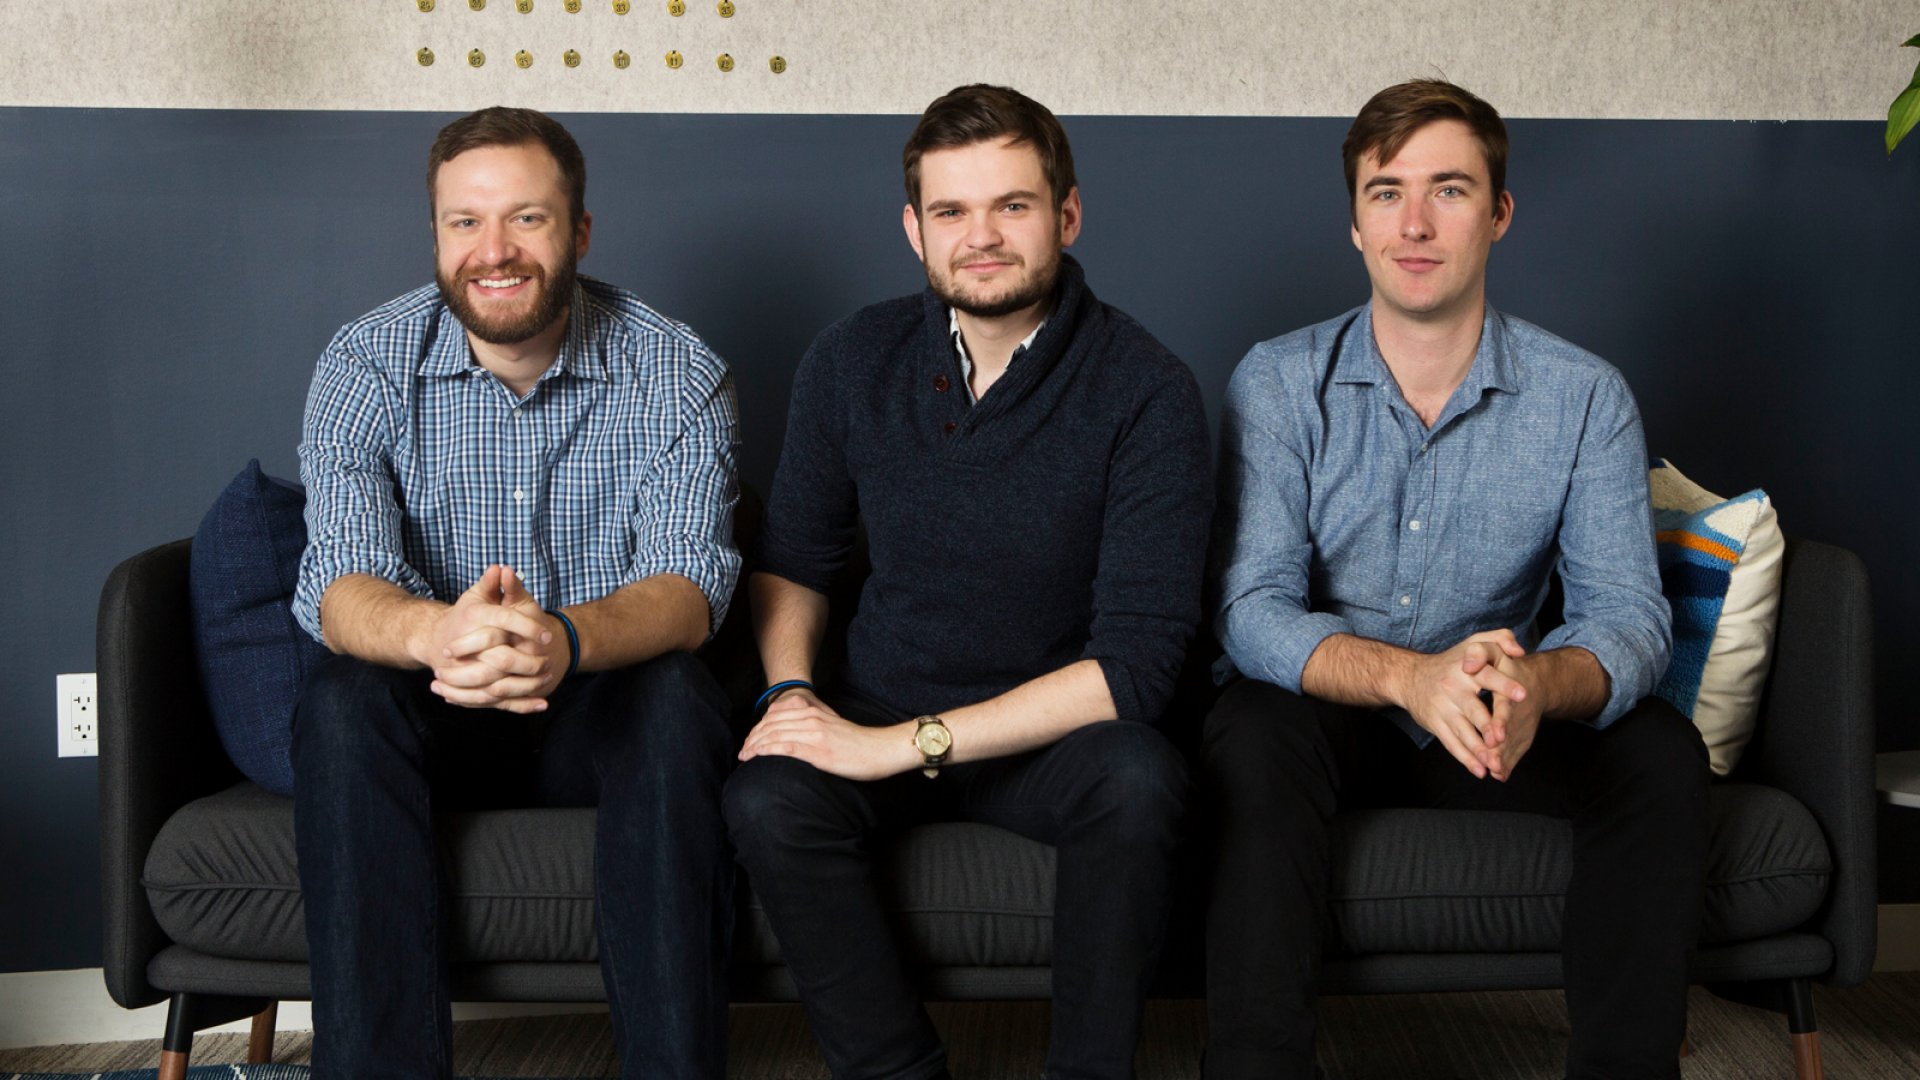 Mark43 co-founders Matthew Polega, Scott Crouch, and Florian Mayr.